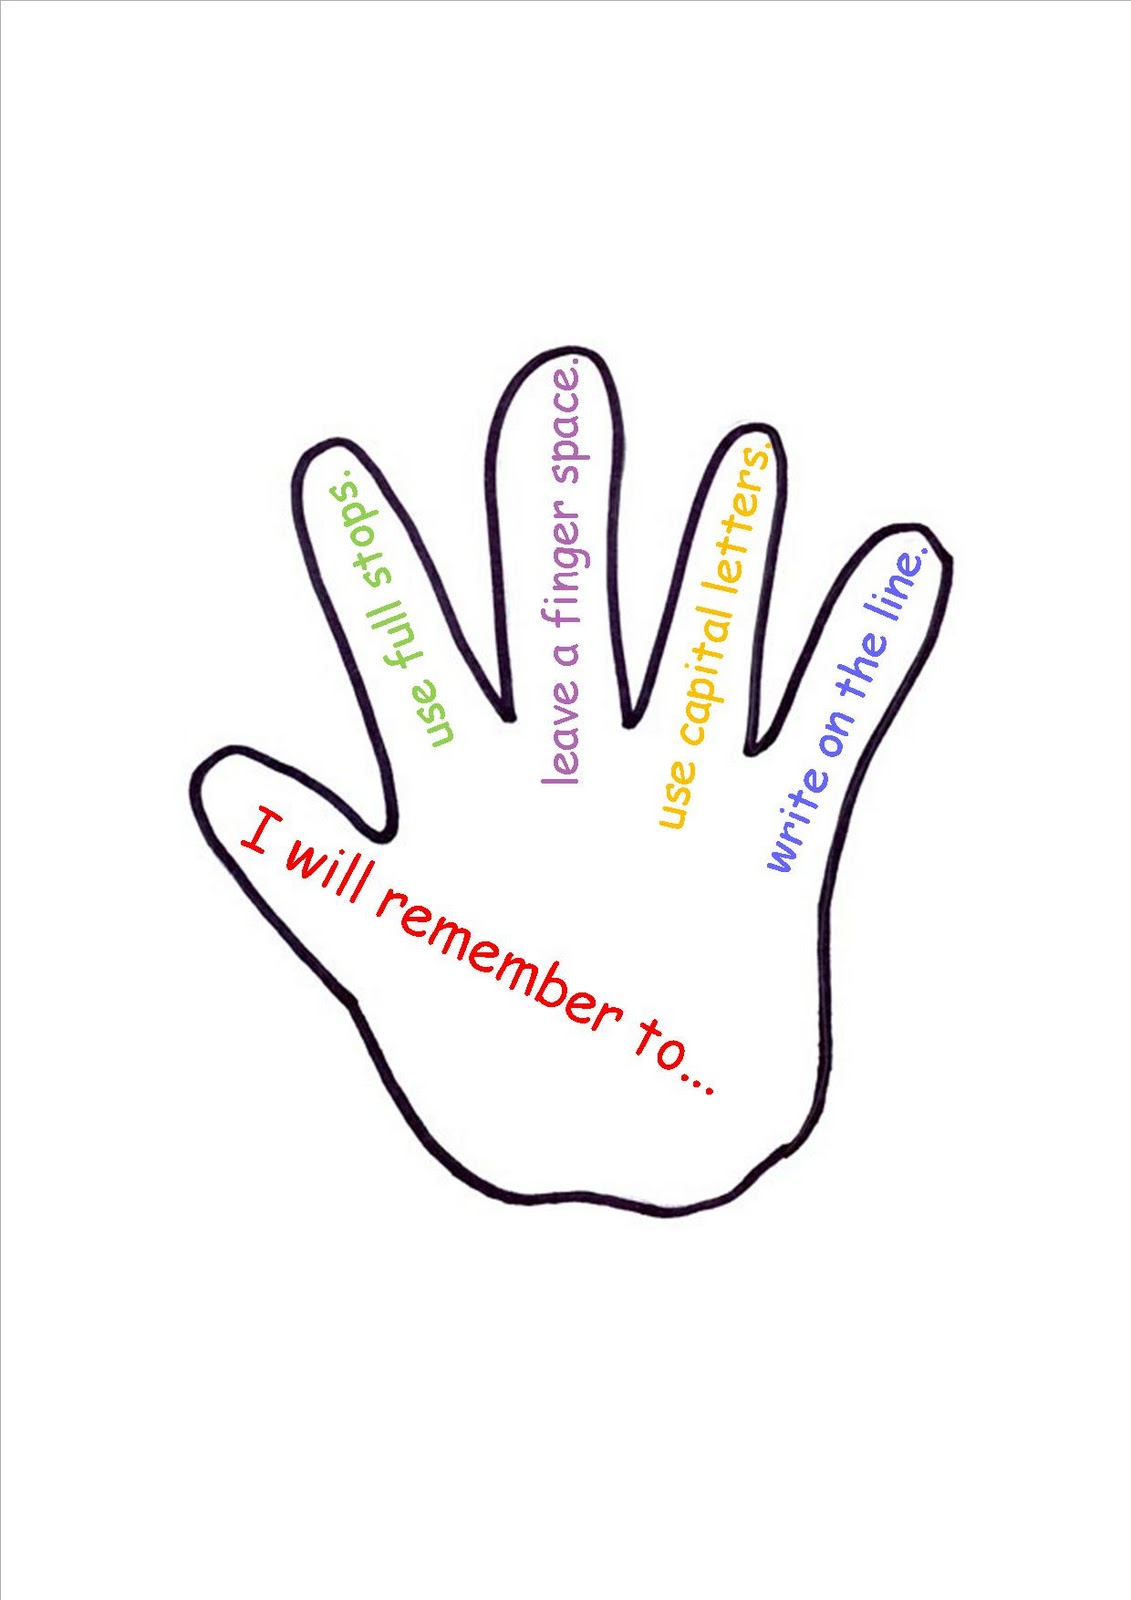 photograph about Printable Handprint Template called Handprint Turkey Template. totally free turkey handprint placemat